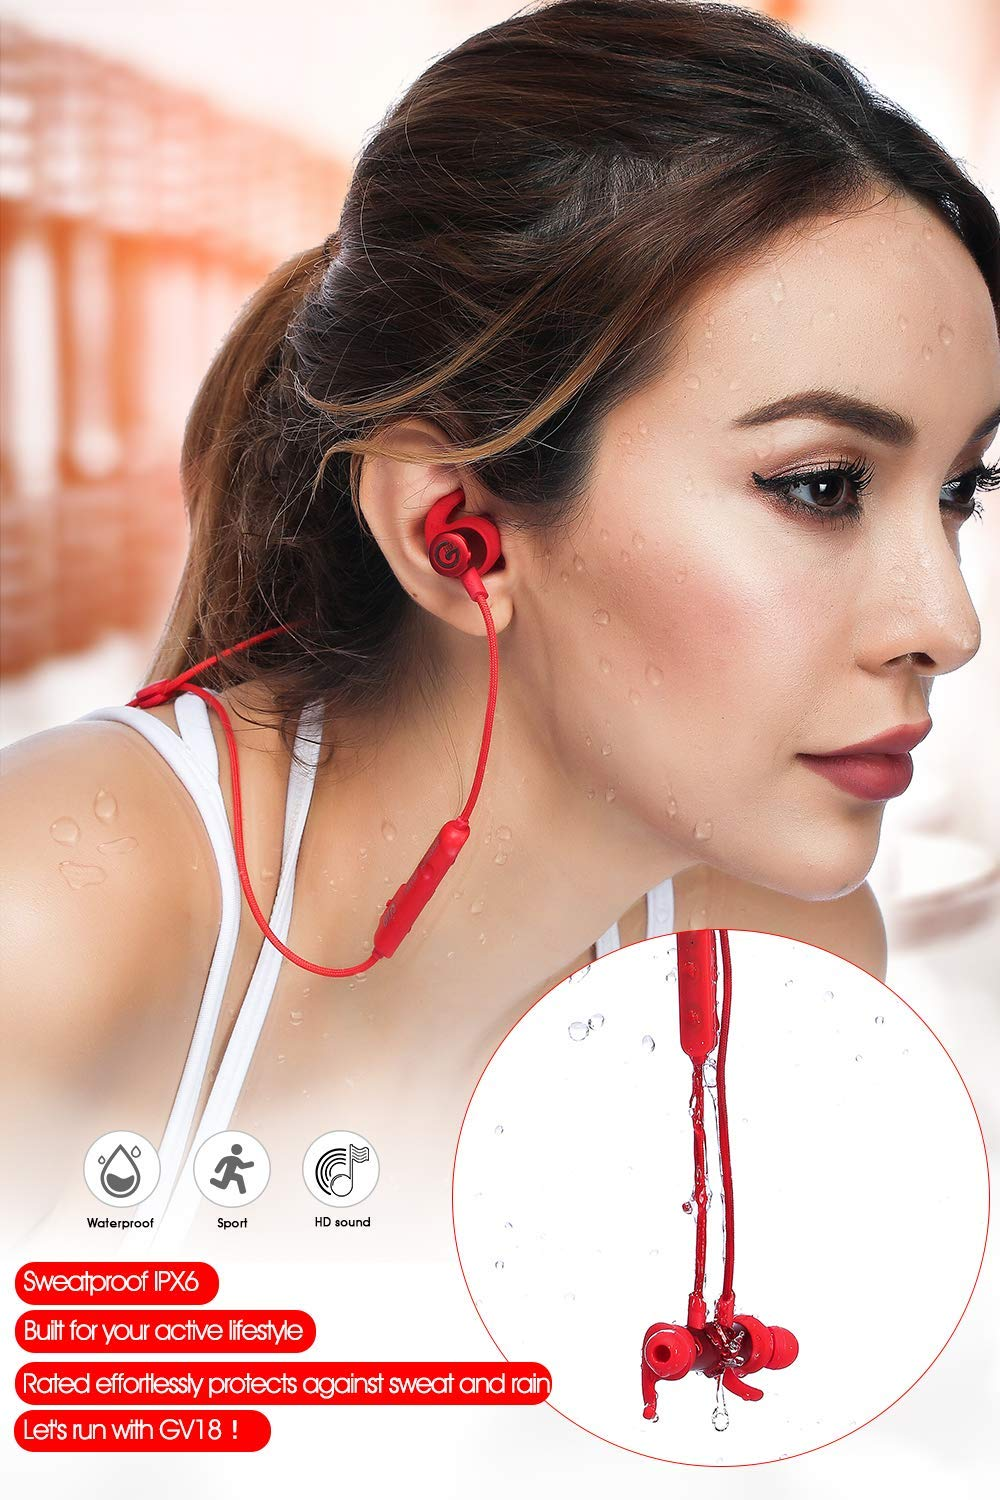 GEVO Bluetooth Headphone Sweatproof IPX6, in-Ear HiFi Bass Stereo Qualcomm Bluetooth V5.0 Wireless Earbuds w MIC and Noise Cancelling for Sports Travelling Household, 8 Hours Playtime Red